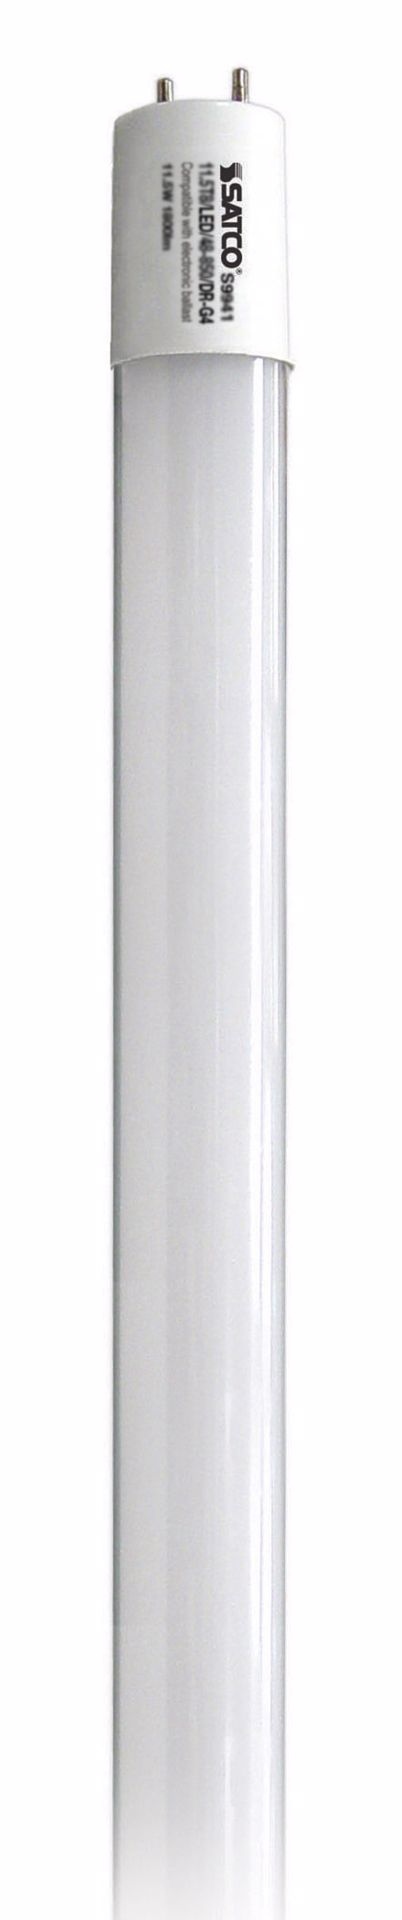 "Picture of SATCO S29992 10T8/LED/36-840/DR 36""  LED Light Bulb"